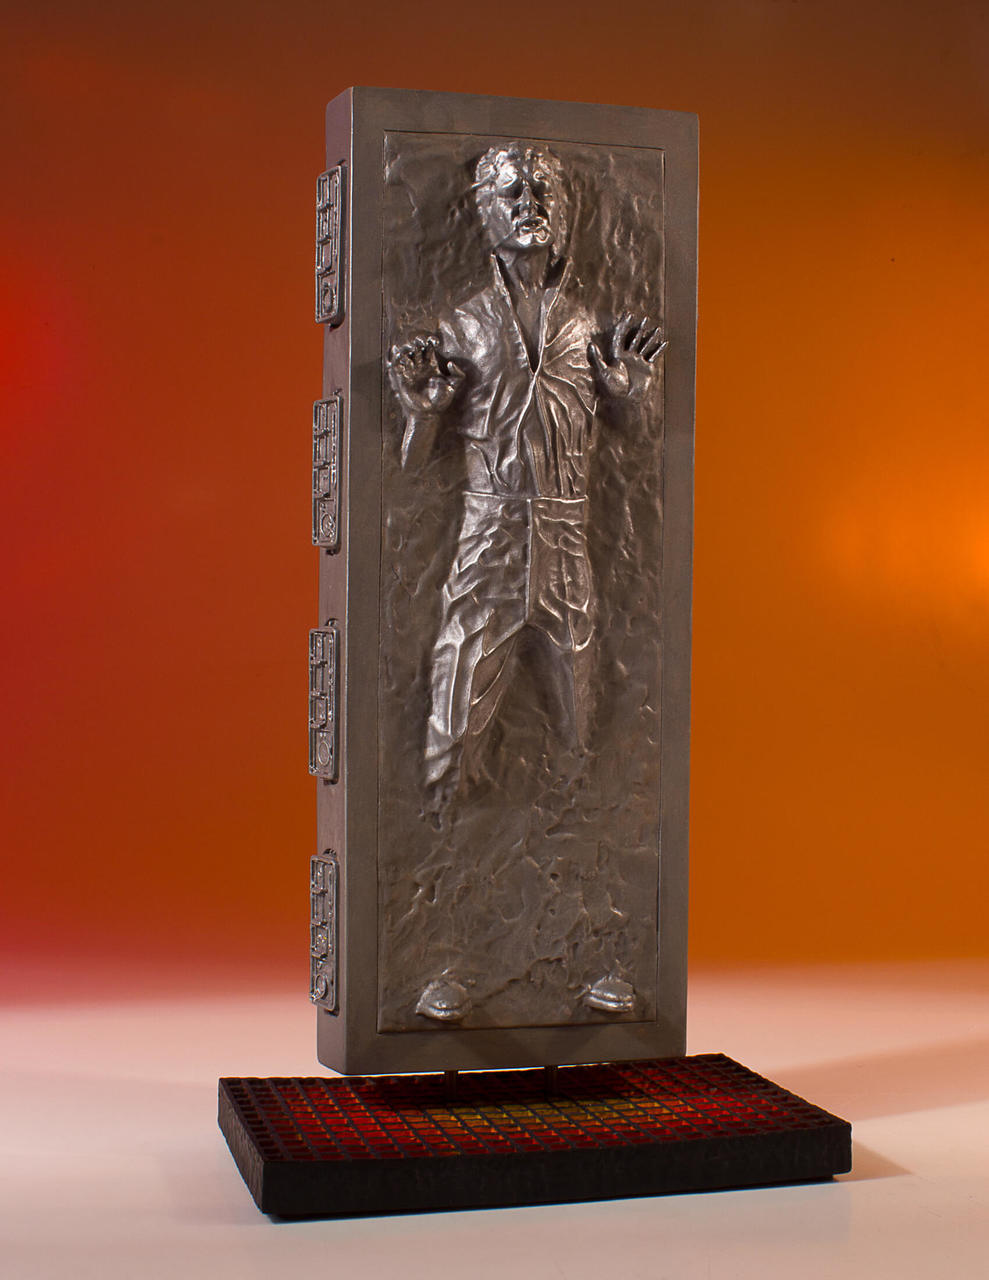 TESB Han Solo In Carbonite Collectors Gallery Statue 2